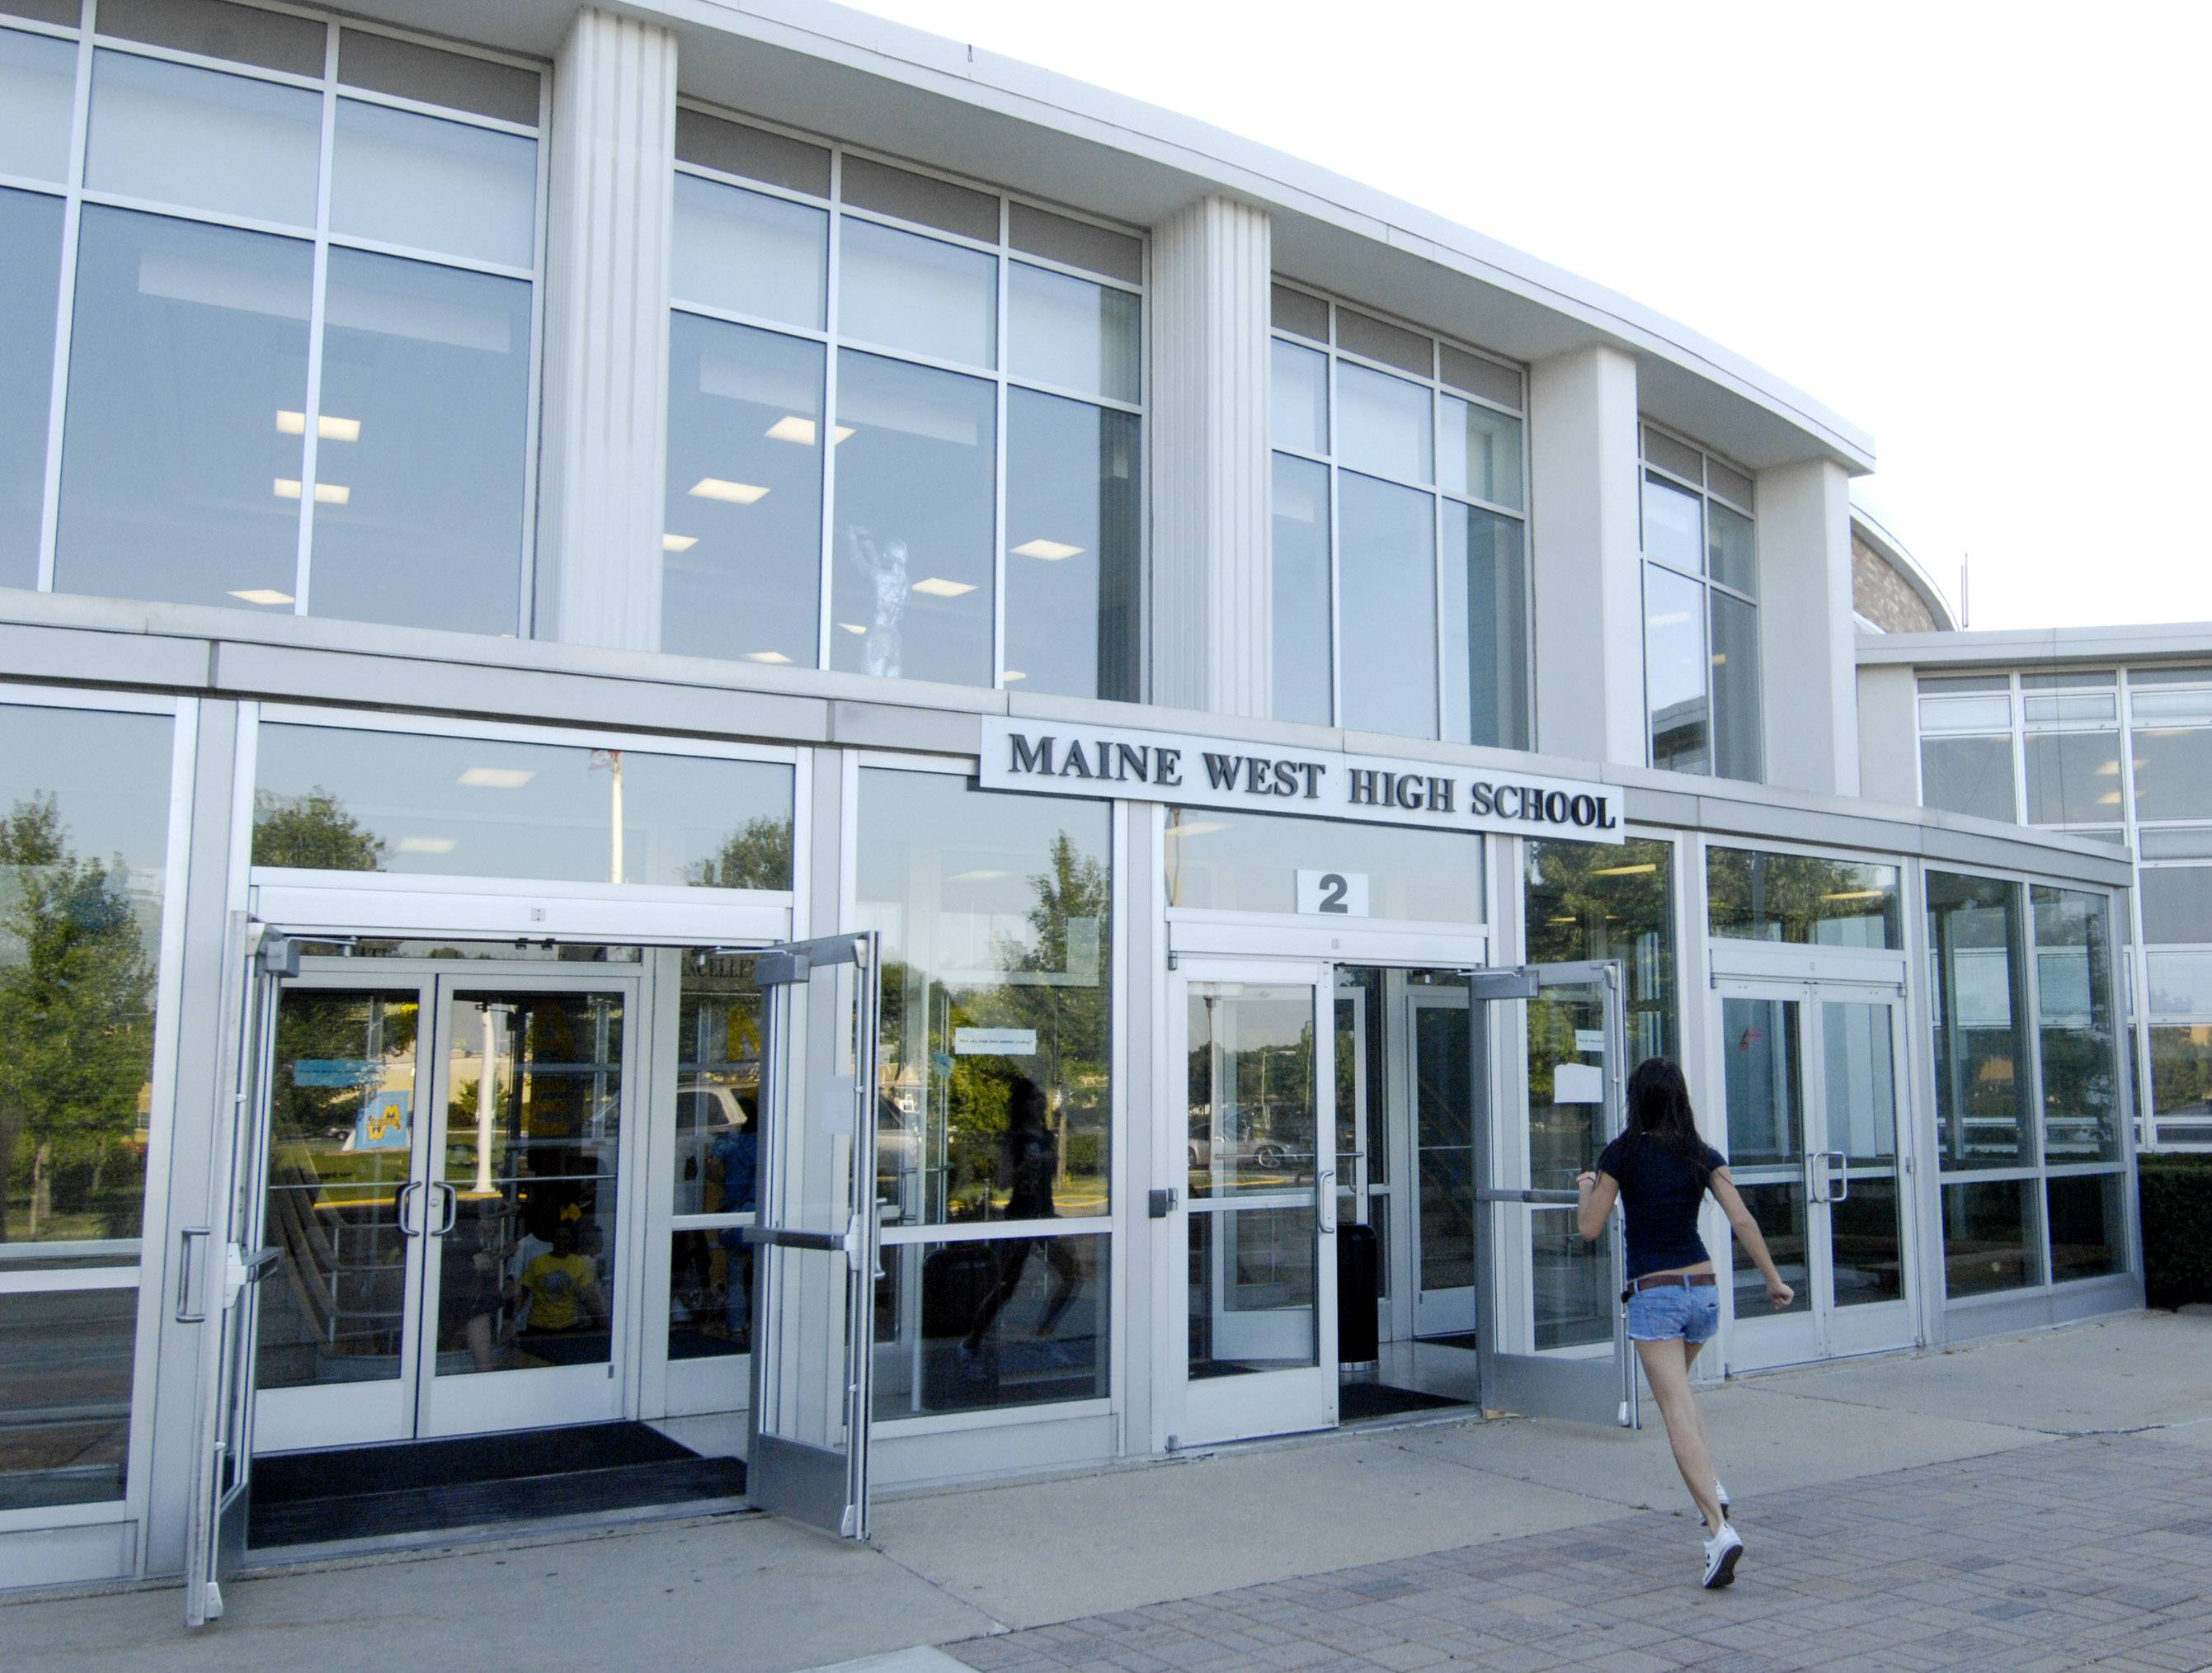 Last week's announced settlement of Maine West High School District 207's lawsuit over hazing allegations must be a cautionary tale for suburban schools because of the chilling warning it sends.